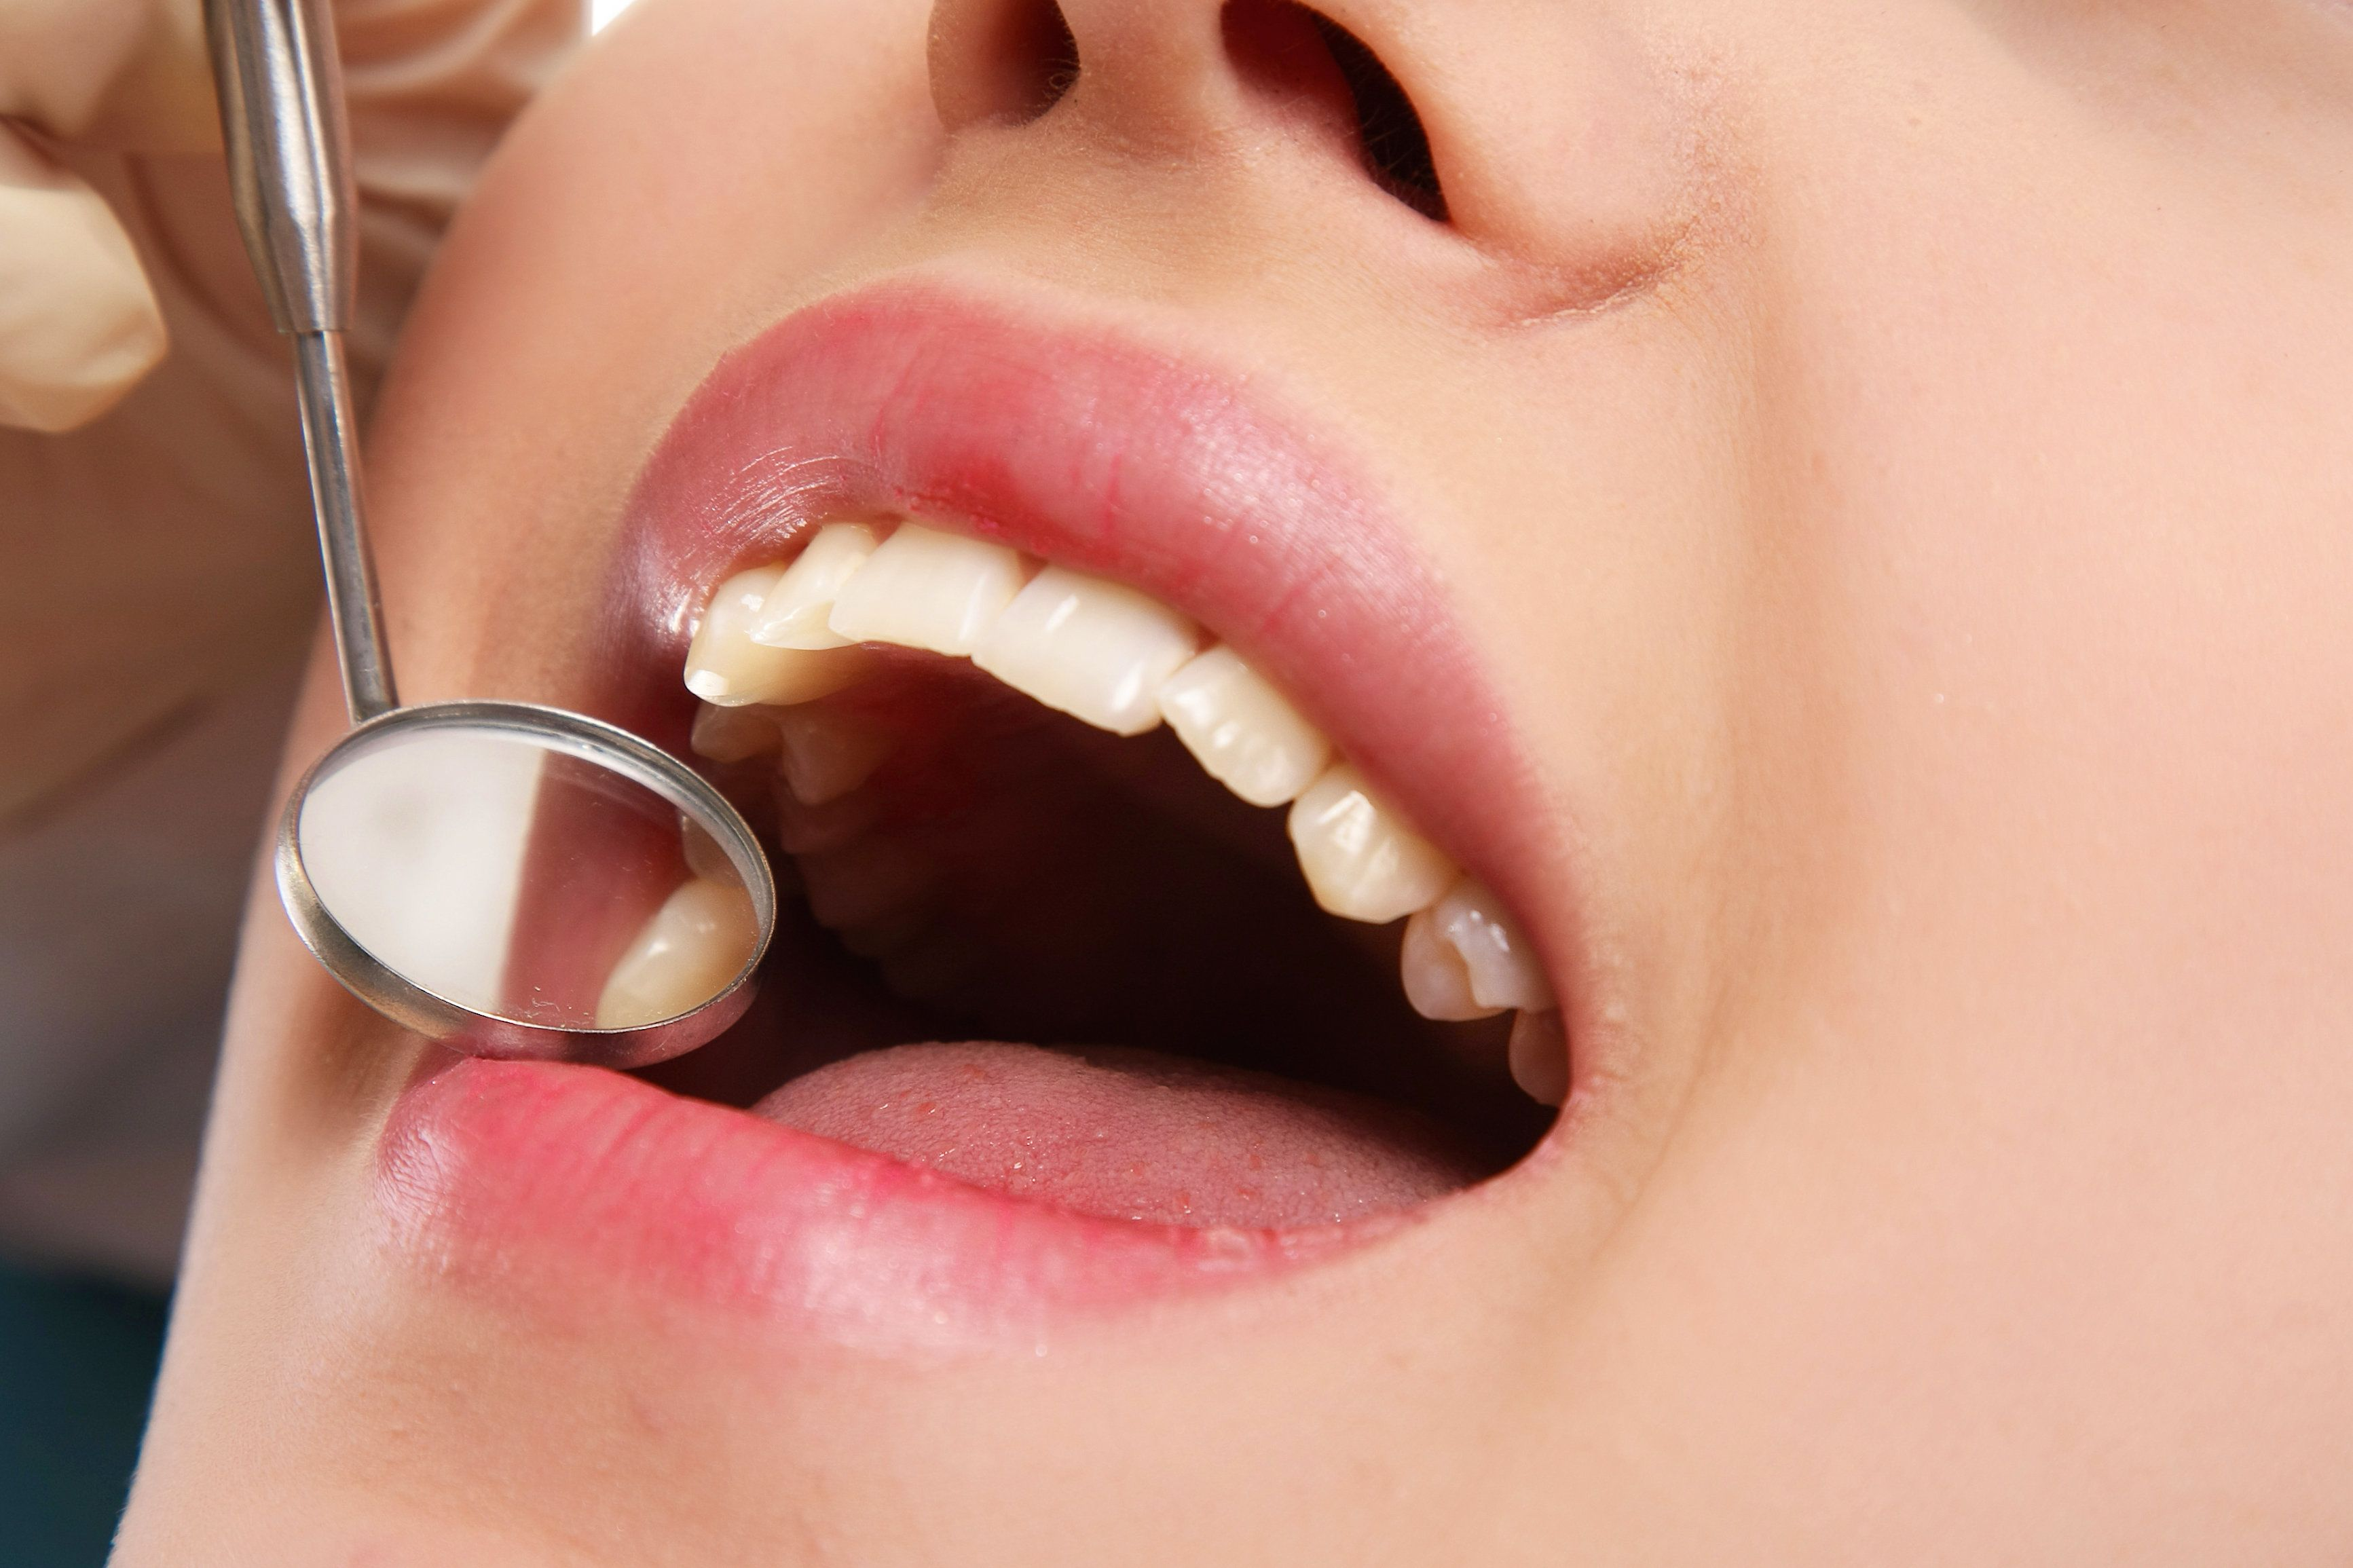 Teeth being examined with a dental mirror